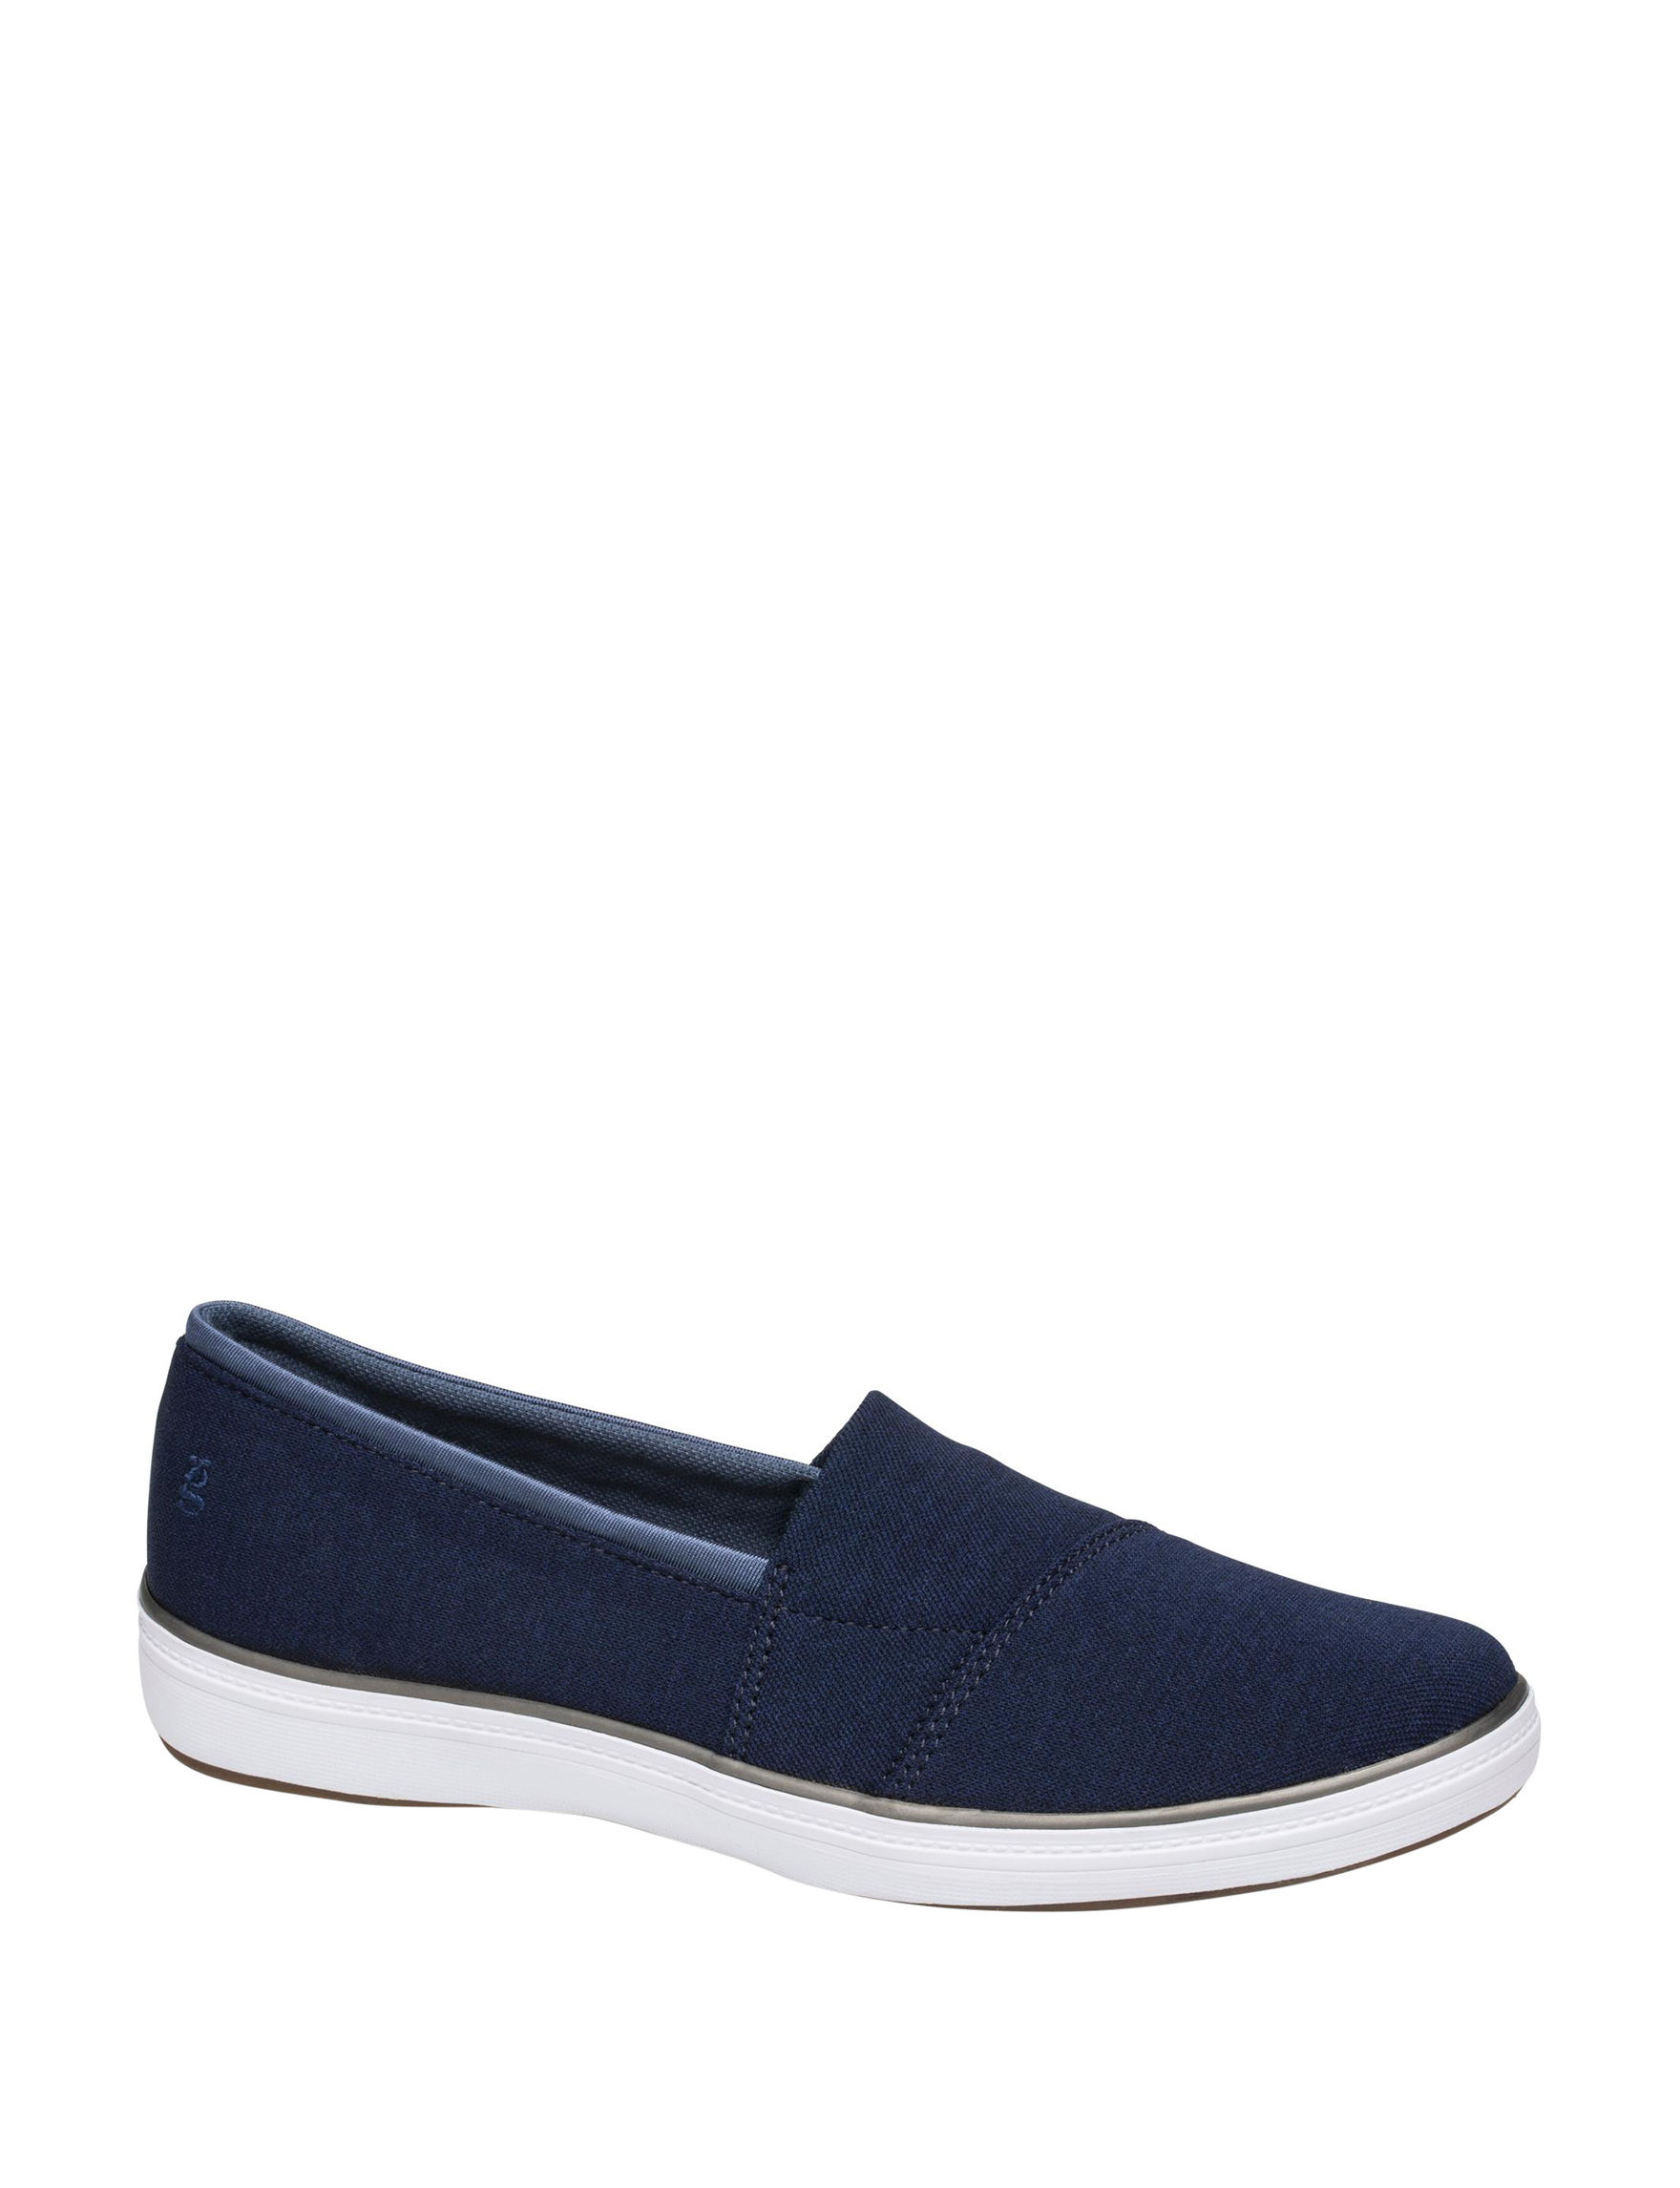 Grasshoppers Navy Comfort Shoes